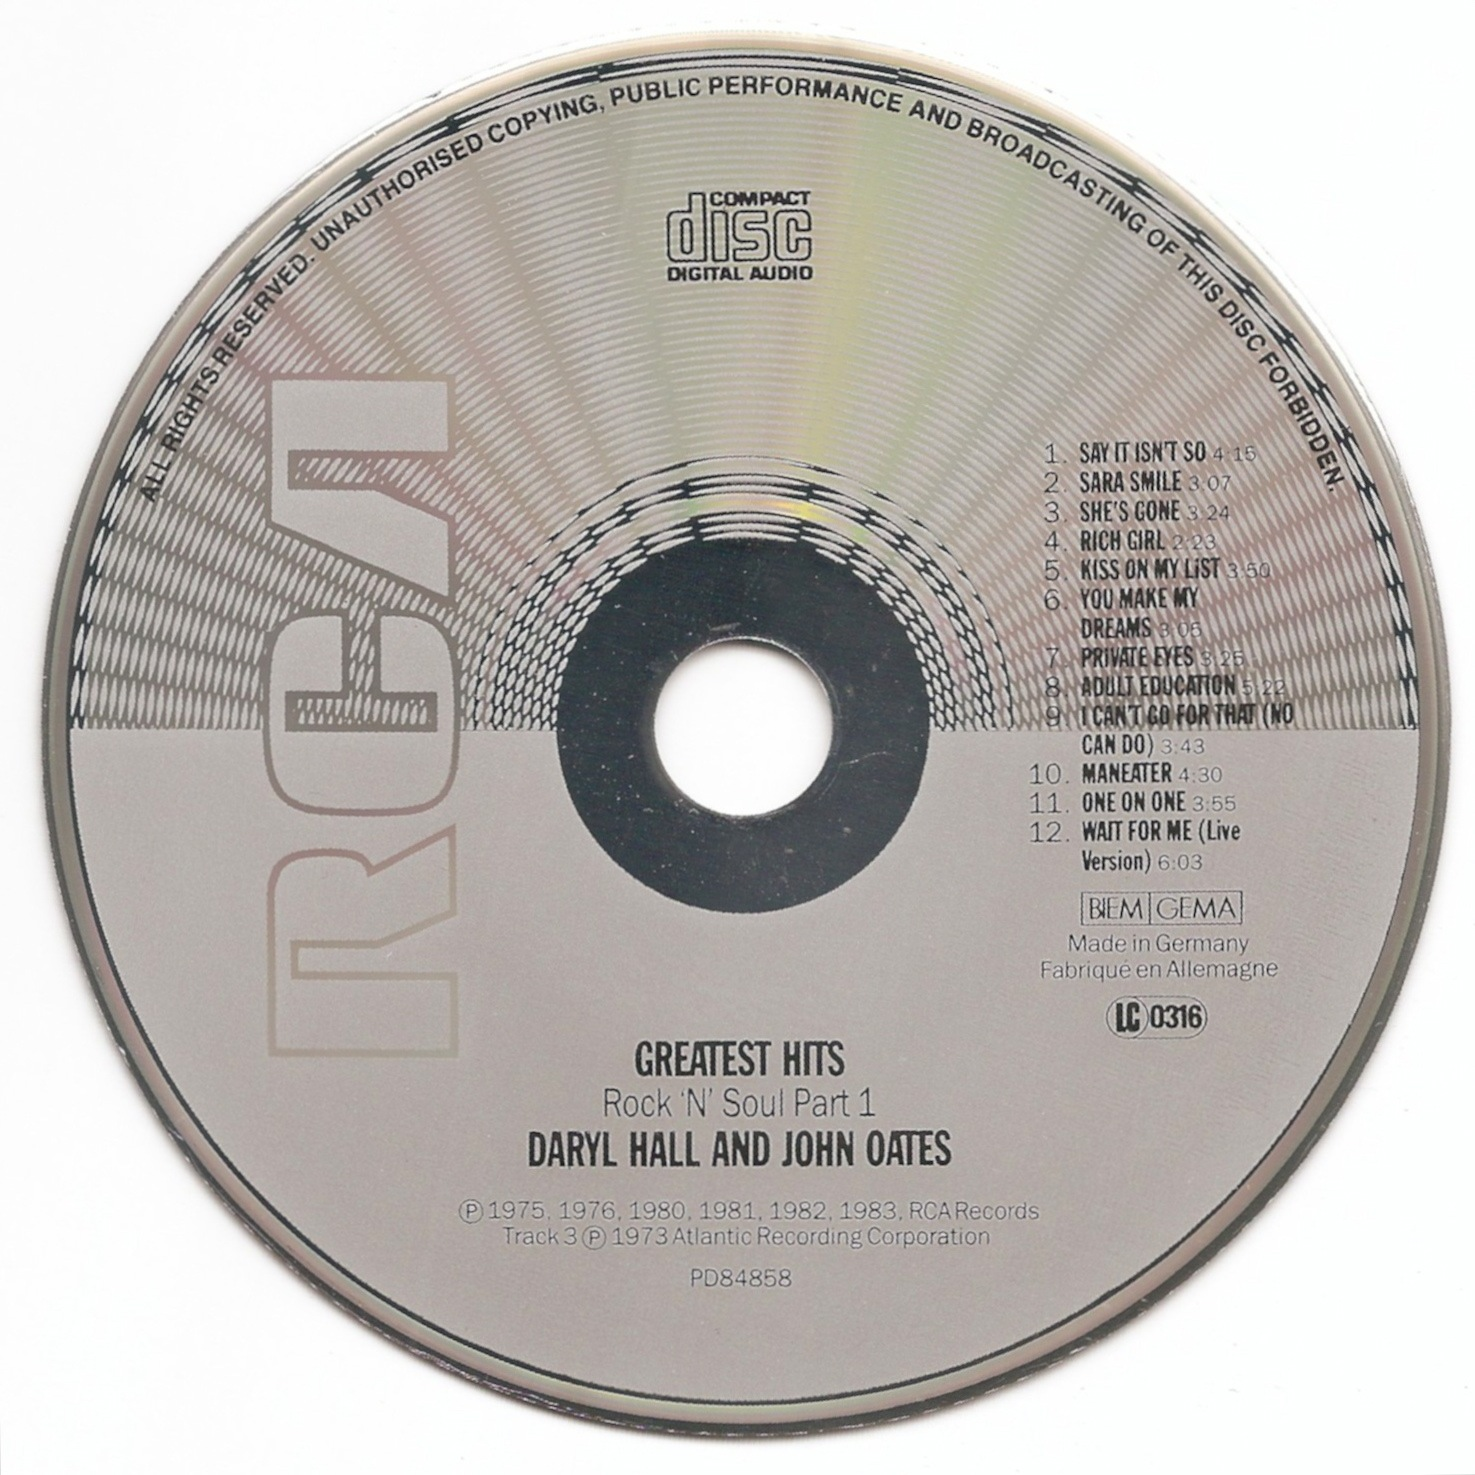 Greatest Hits Rock N Soul Pt 1 Daryl Hall John Oates: The First Pressing CD Collection: Hall & Oates